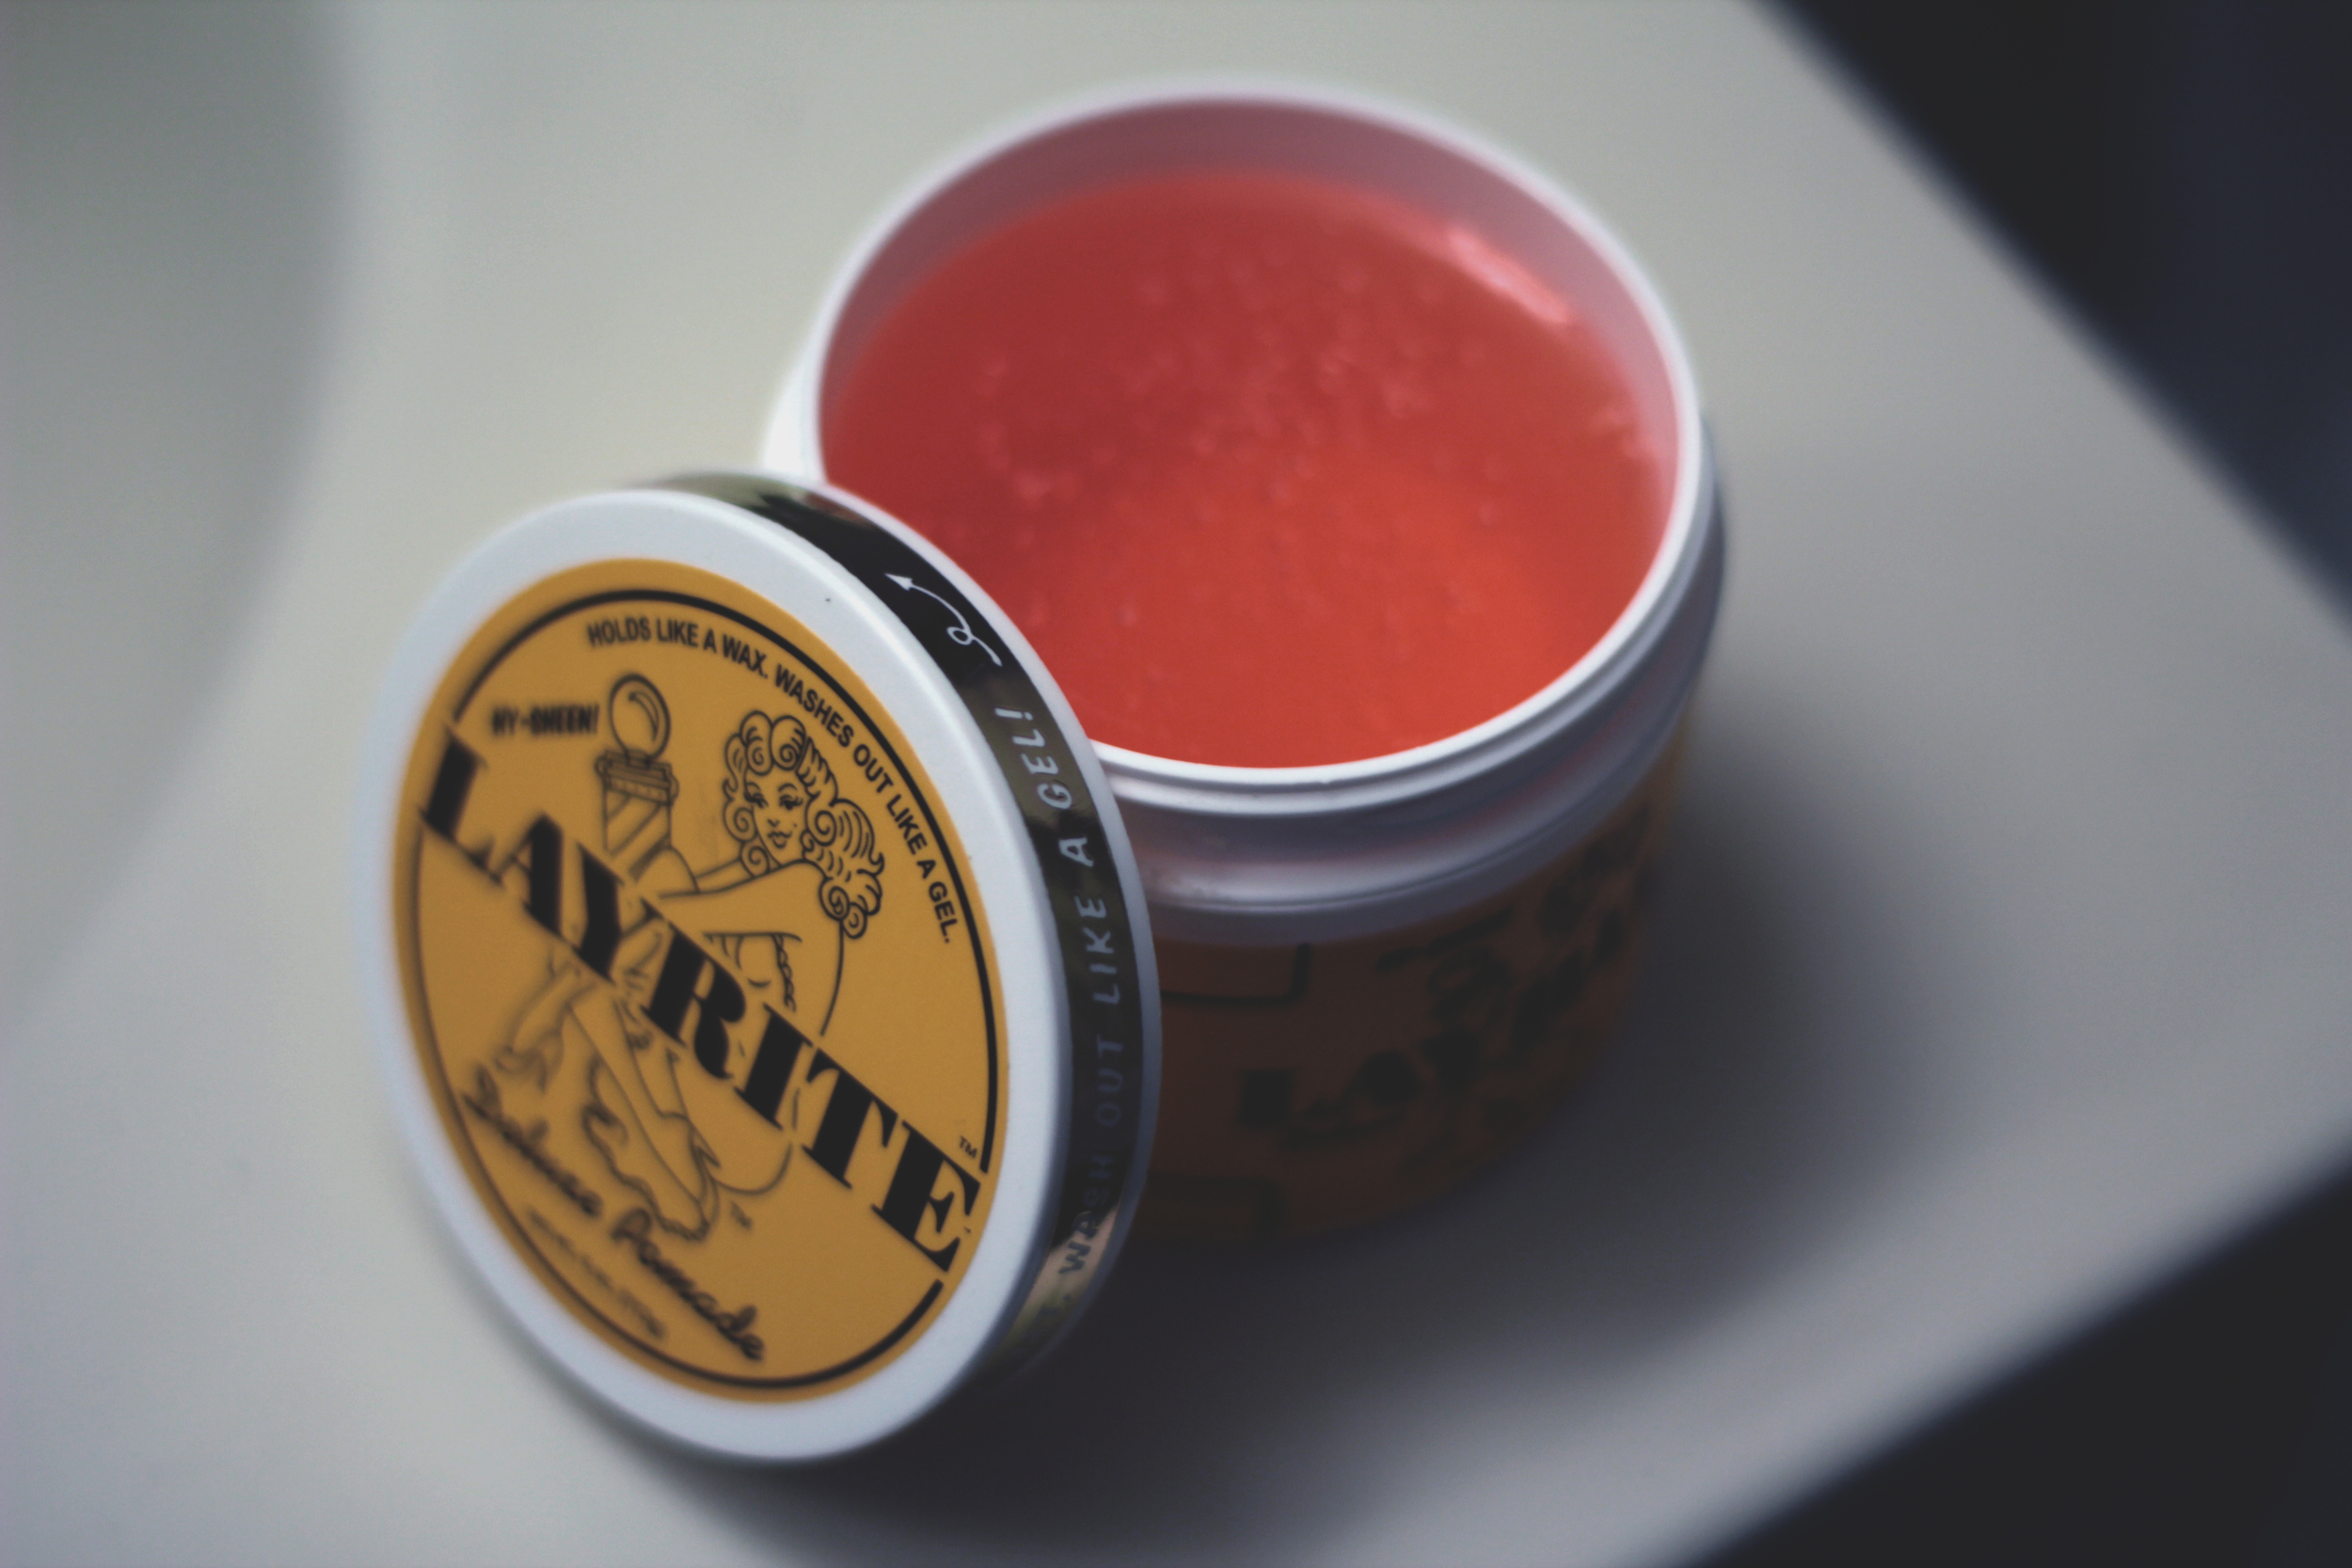 Layrite Deluxe Pomade texture